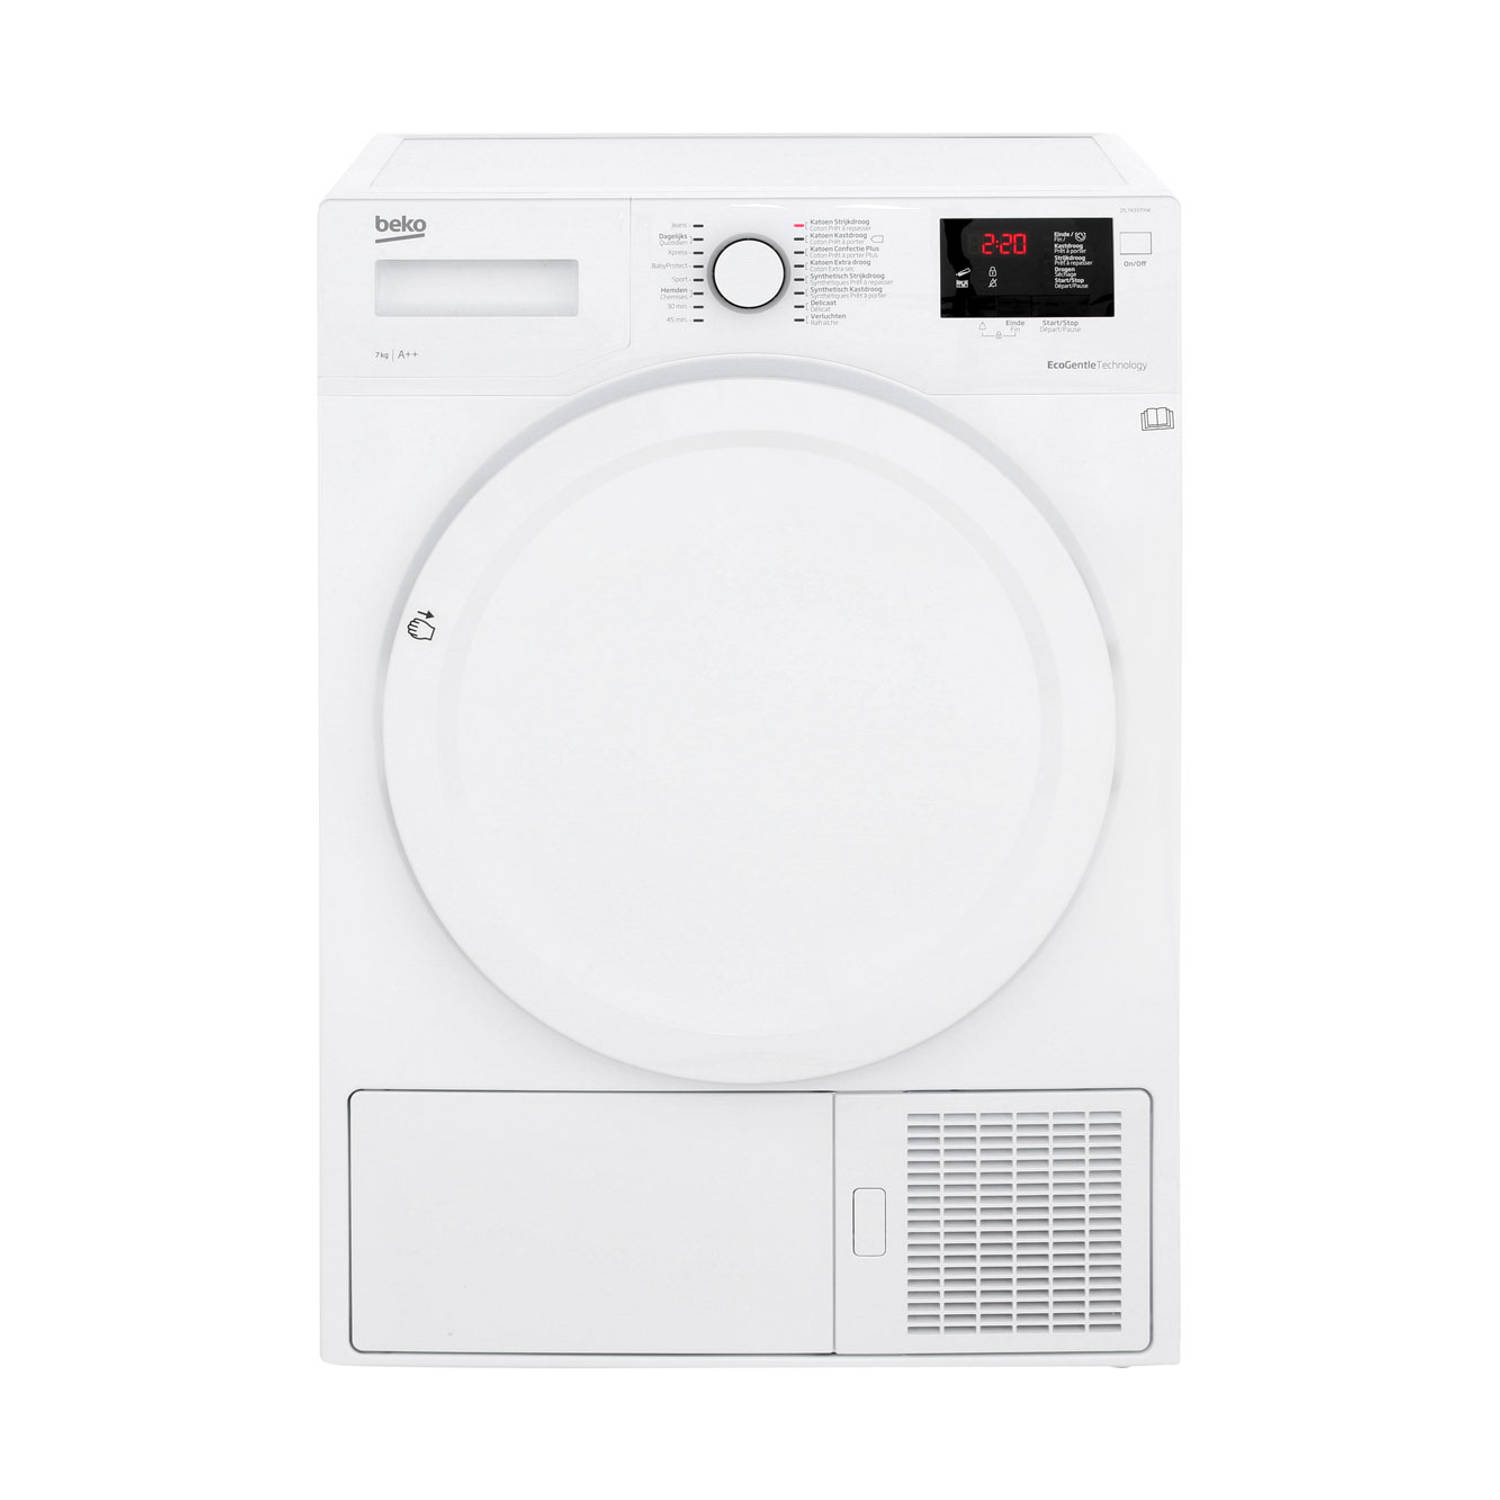 Beko DS7433PXW warmtepompdrogers - Wit